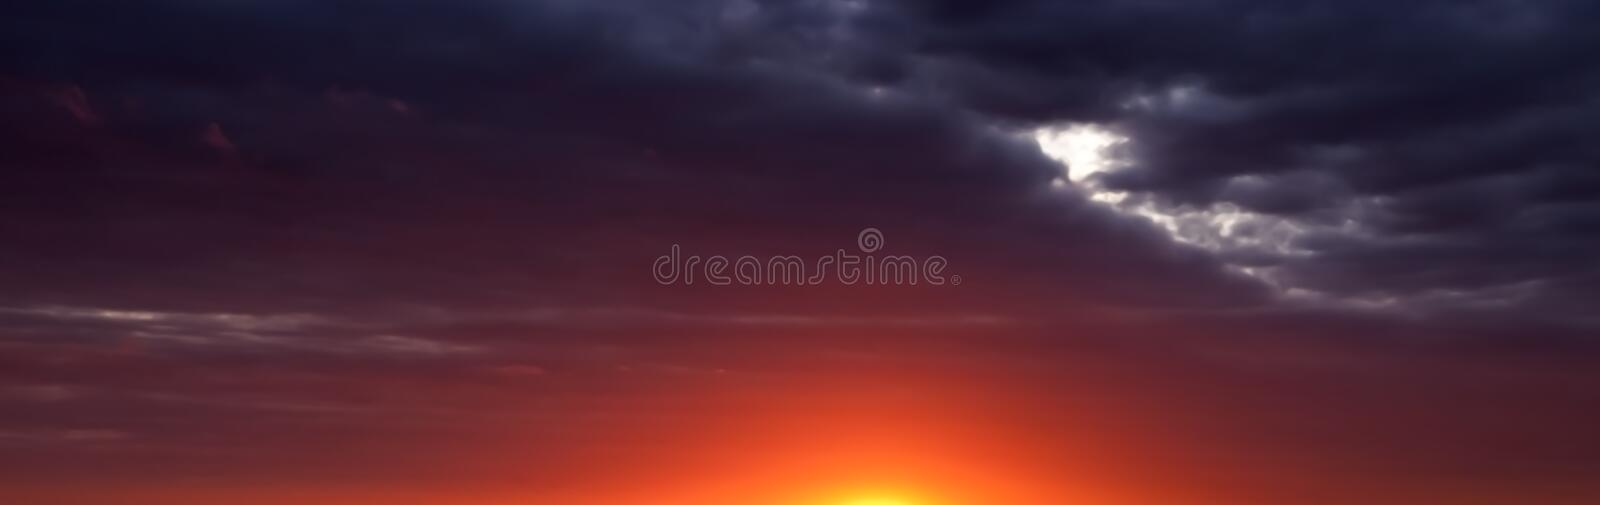 Download Abstract Sunrise Sunset Banner Panoramic Panorama Royalty Free Stock Image - Image: 14813796